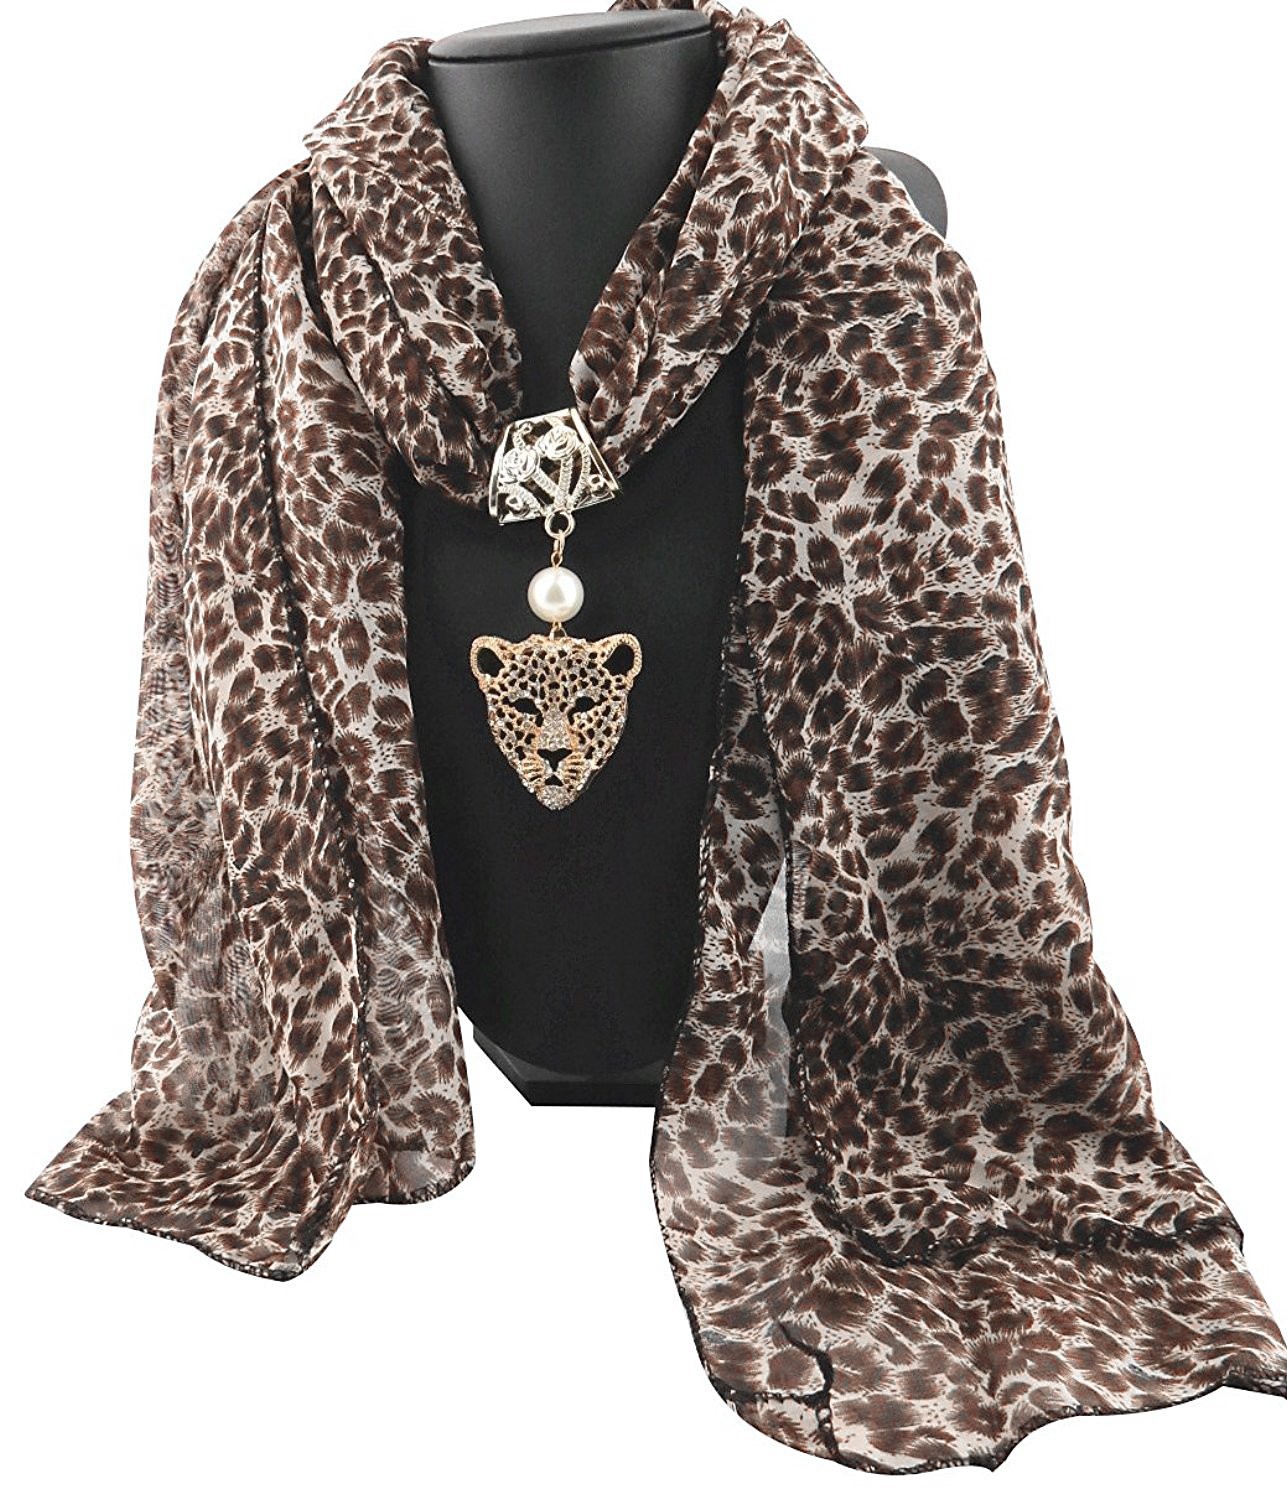 Leopard Print Long Scarf with Pendant Jewelry Charm, Leopard, One Size